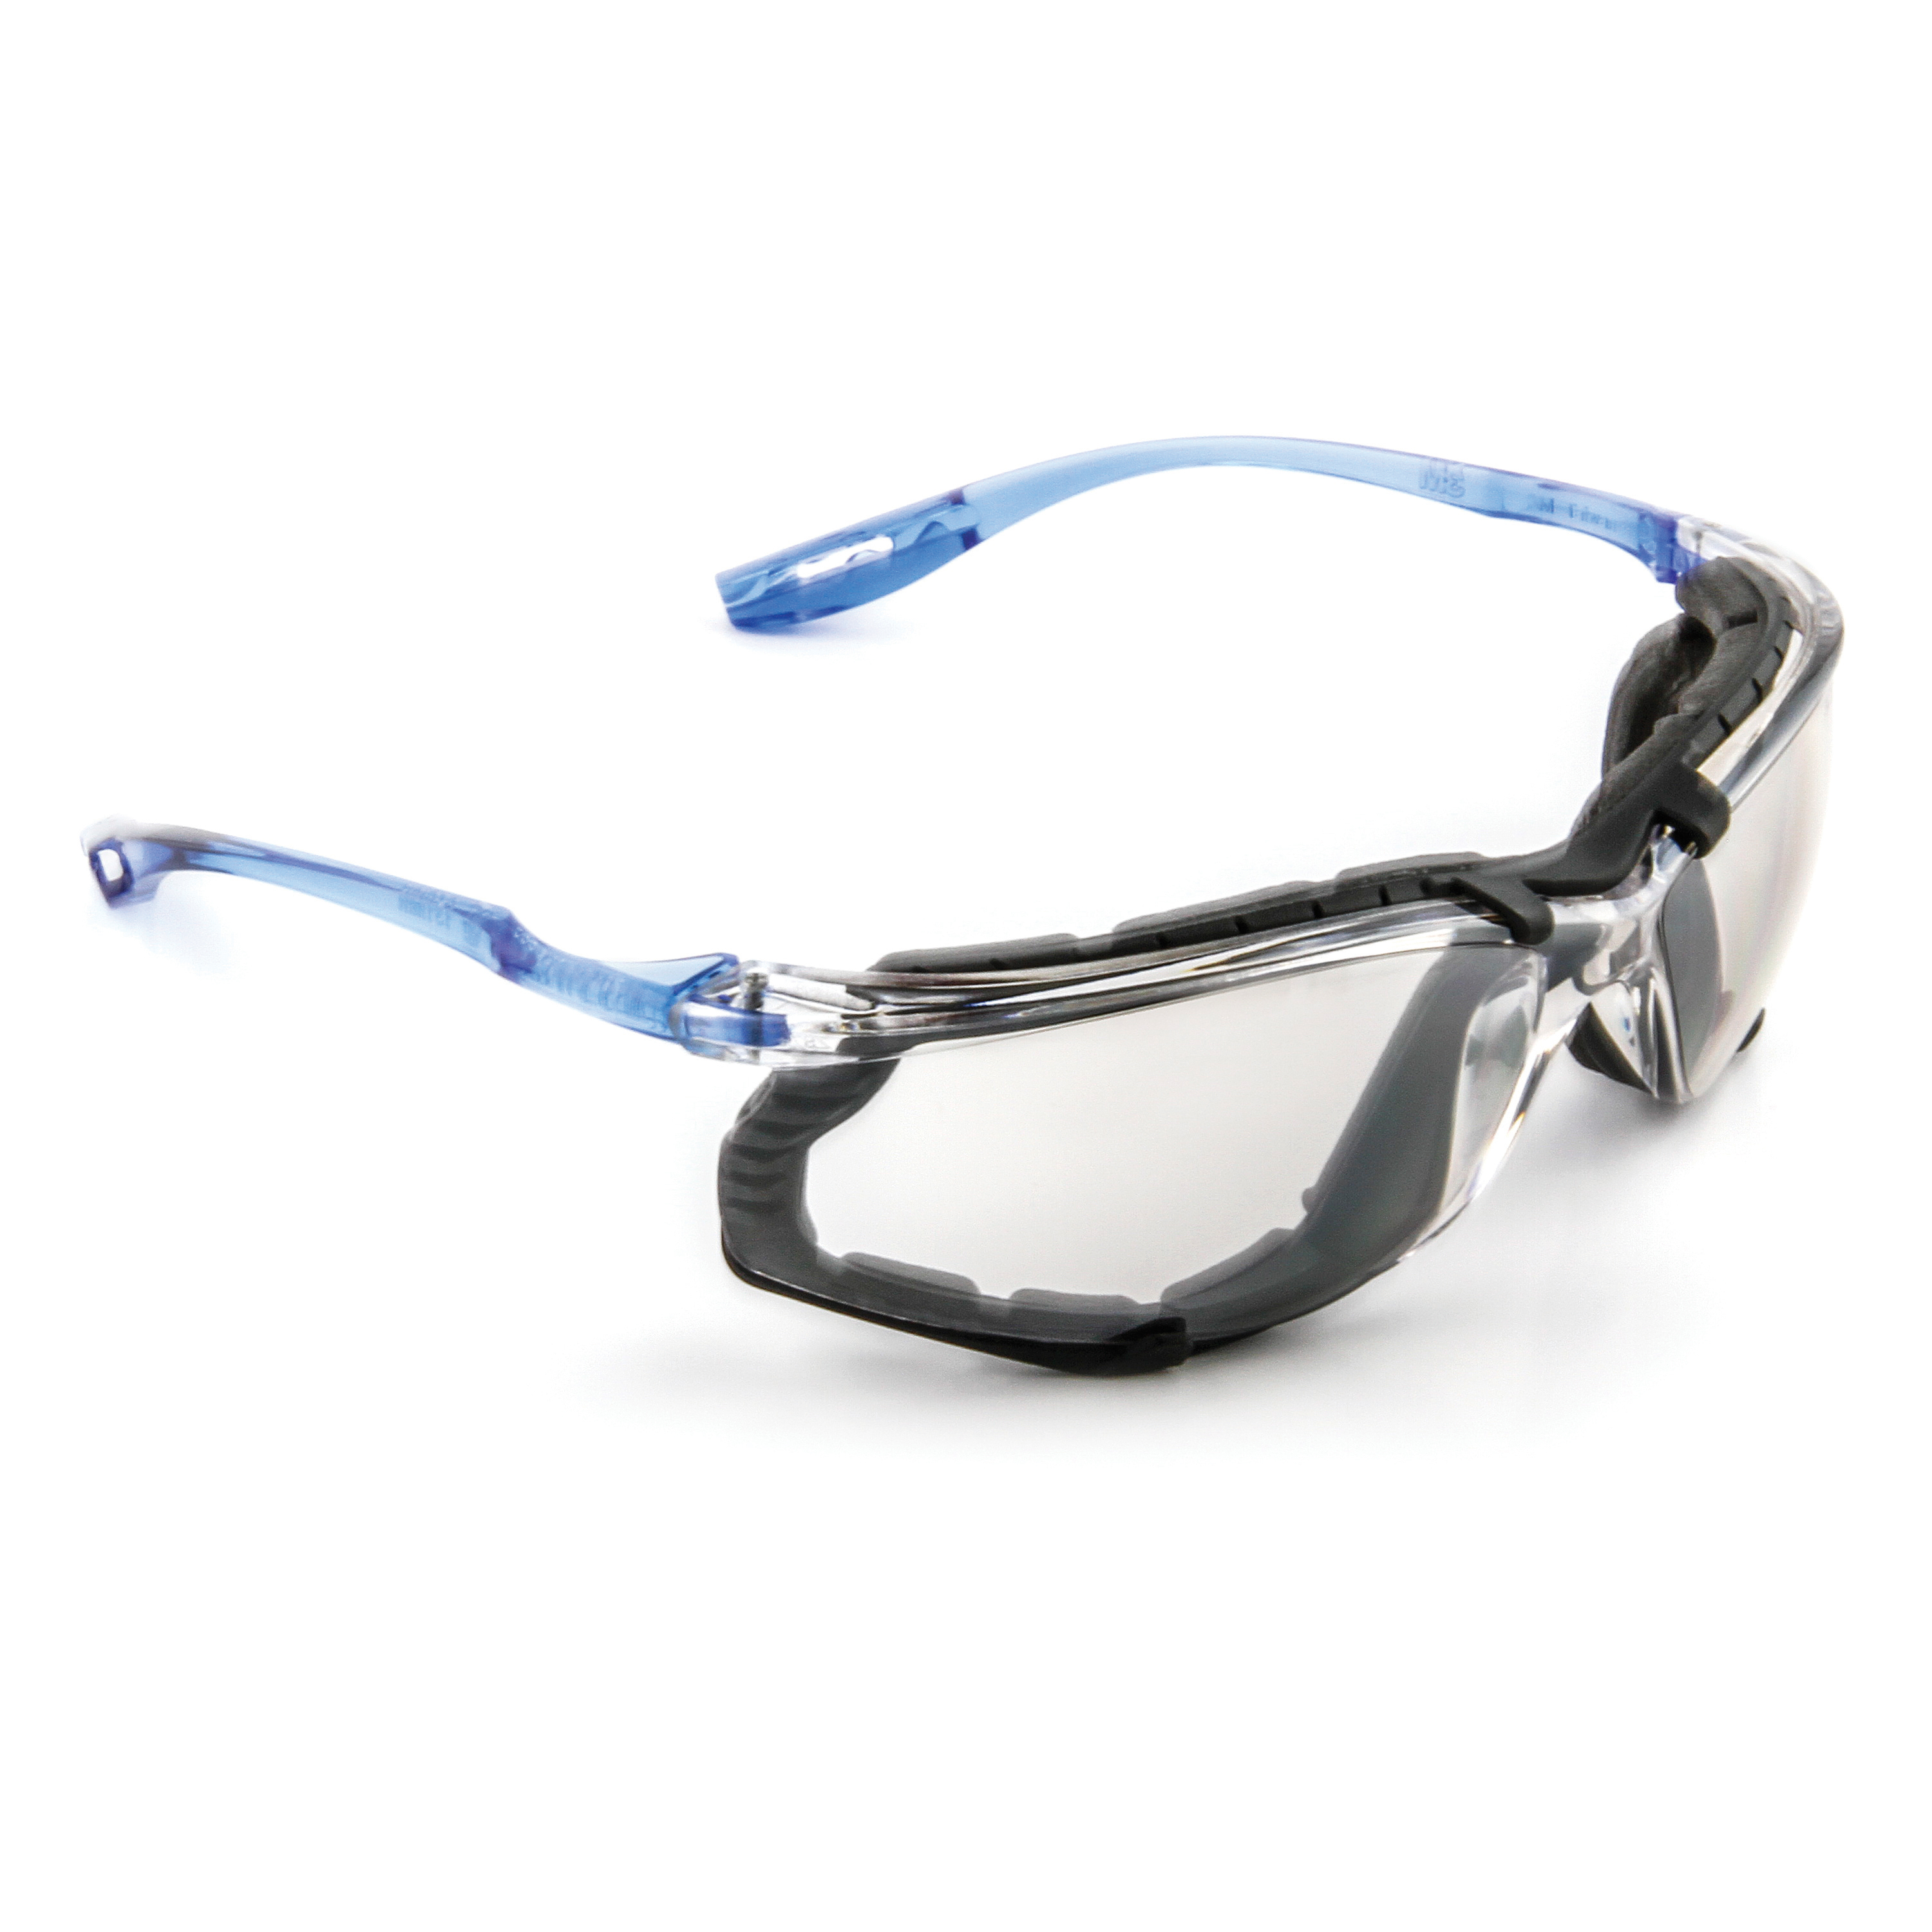 3M™ Virtua™ 078371-11874 11874-00000-20 Economy Protective Eyewear With Foam Gasket, Anti-Fog Indoor/Outdoor Mirror Lens, Frameless/Wraparound Clear Plastic Frame, Polycarbonate Lens, Specifications Met: ANSI Z87.1-2015, CSA Z94.3